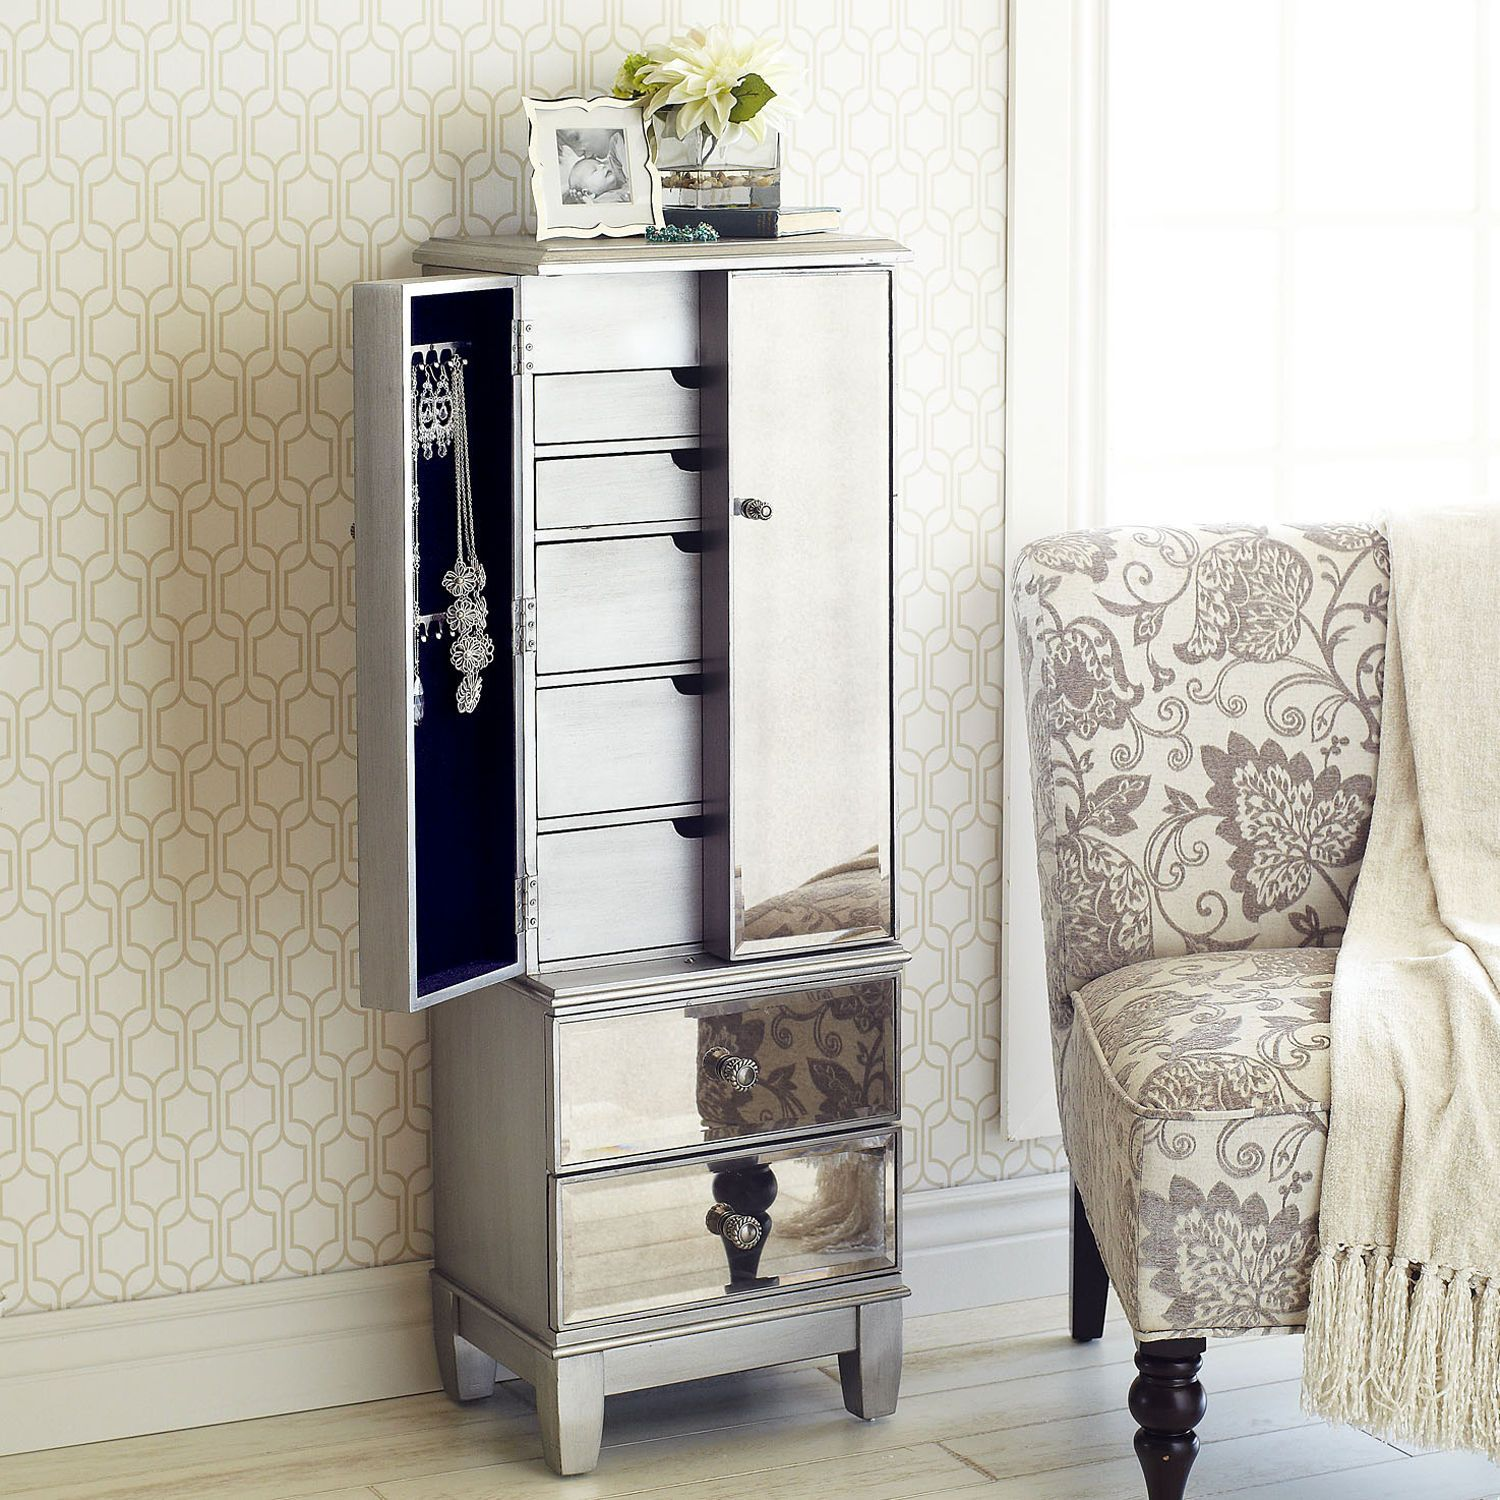 Hayworth mirrored silver jewelry armoire armoires dressing table